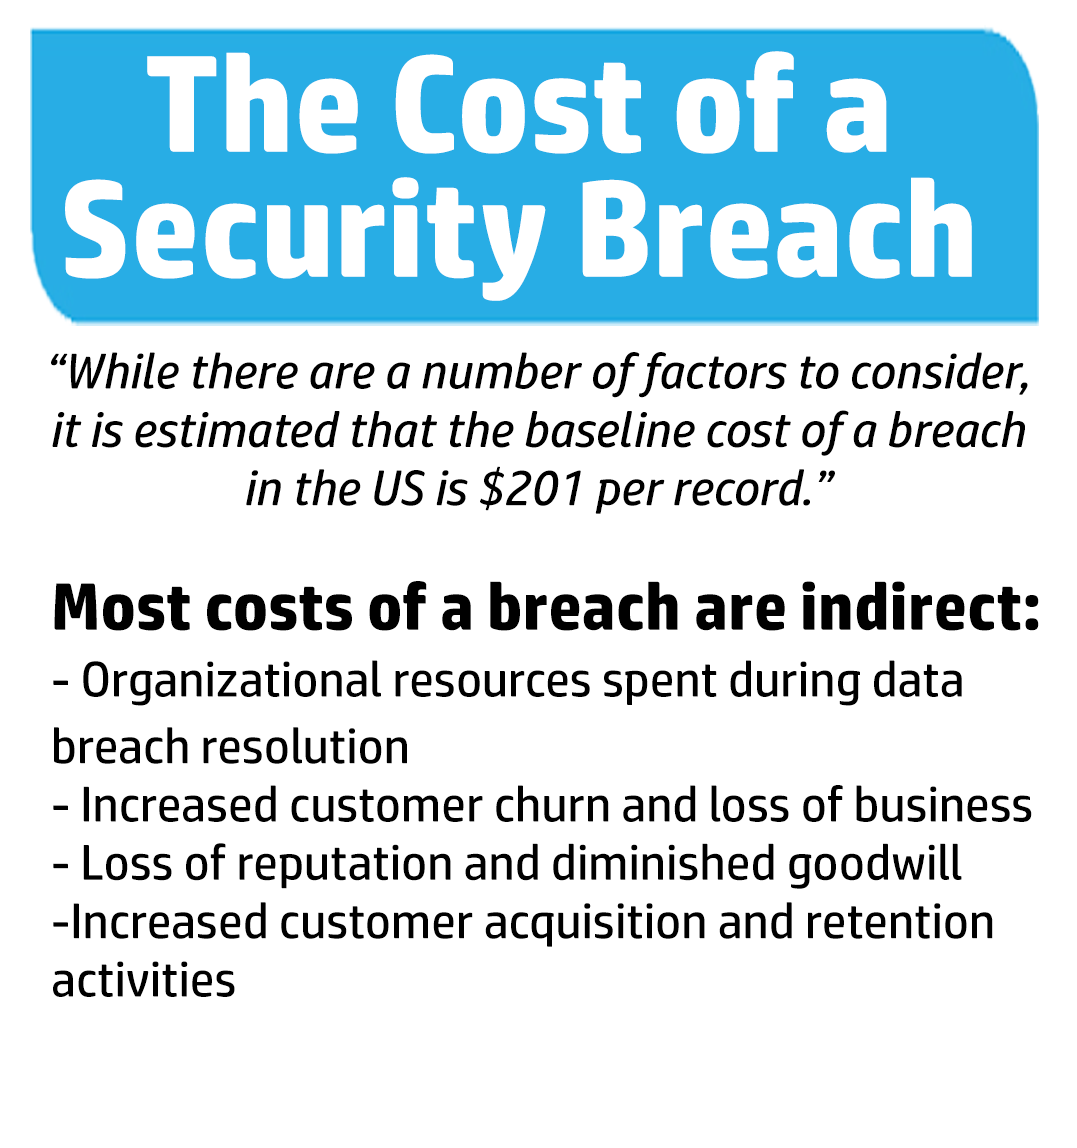 Cost-of-breach-graphic.png